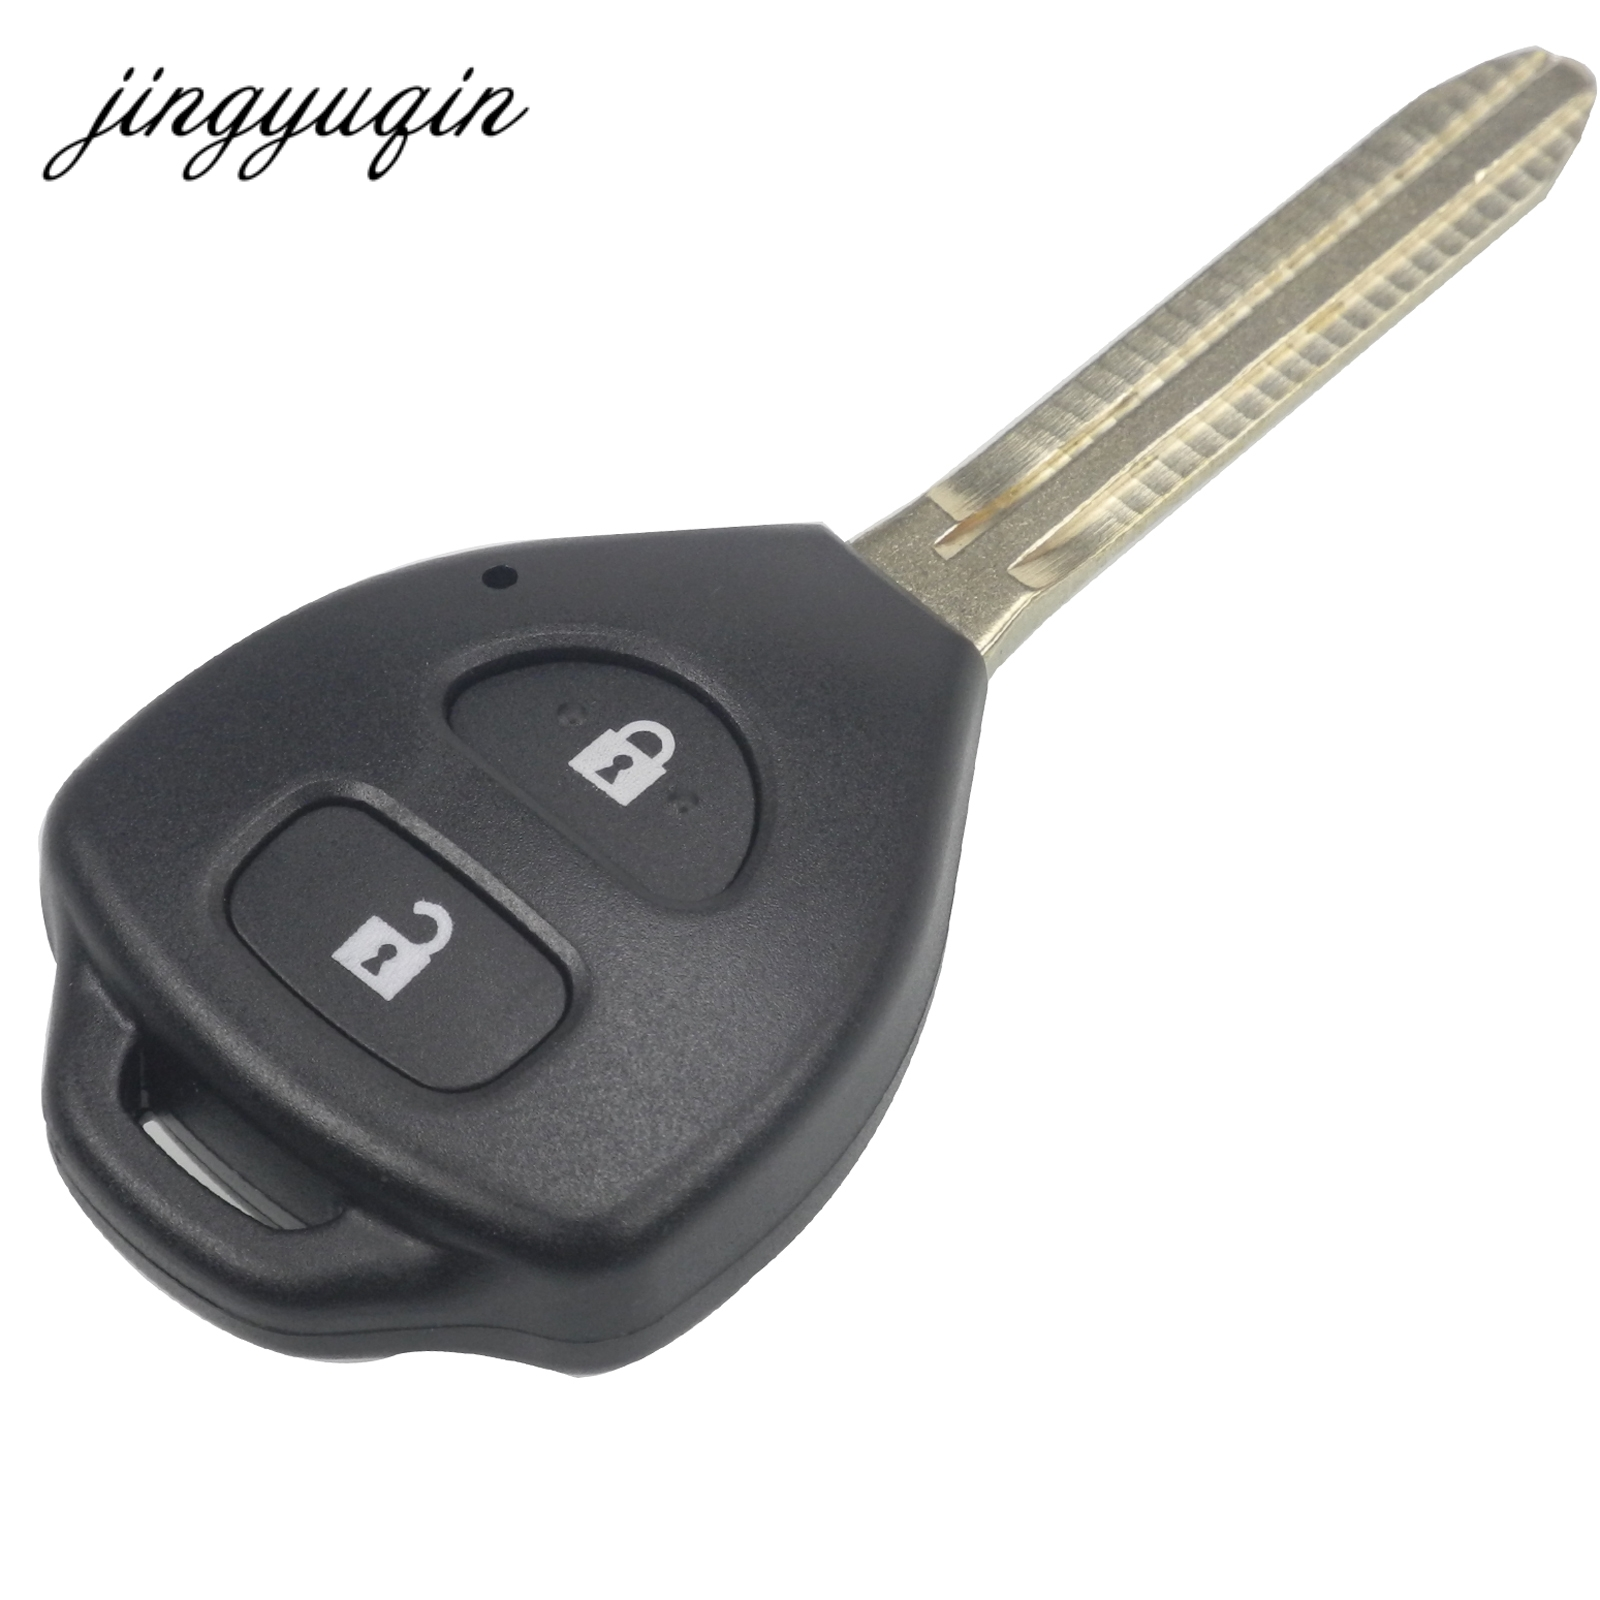 jingyuqin Remote Key Case Shell For TOYOTA Rav4 Corolla Hilux Yaris Avalon Echo Prado TOY43 2 Button Fob(China)